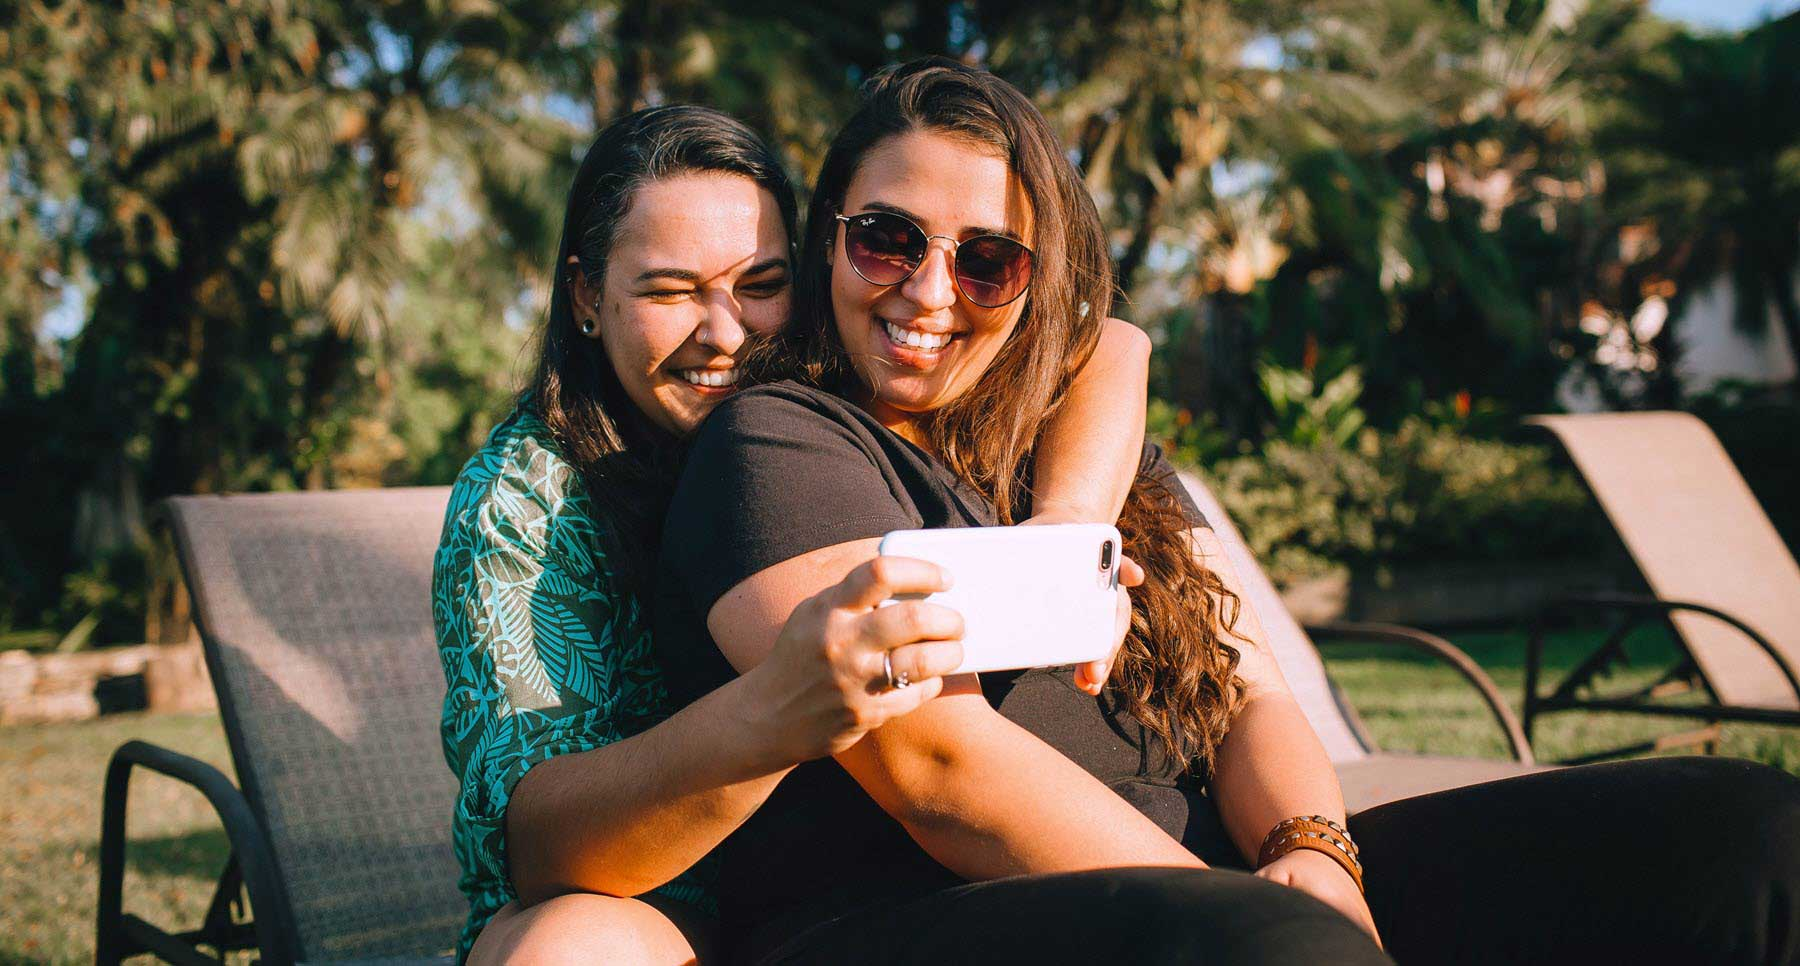 Two girls smiling taking a selfie